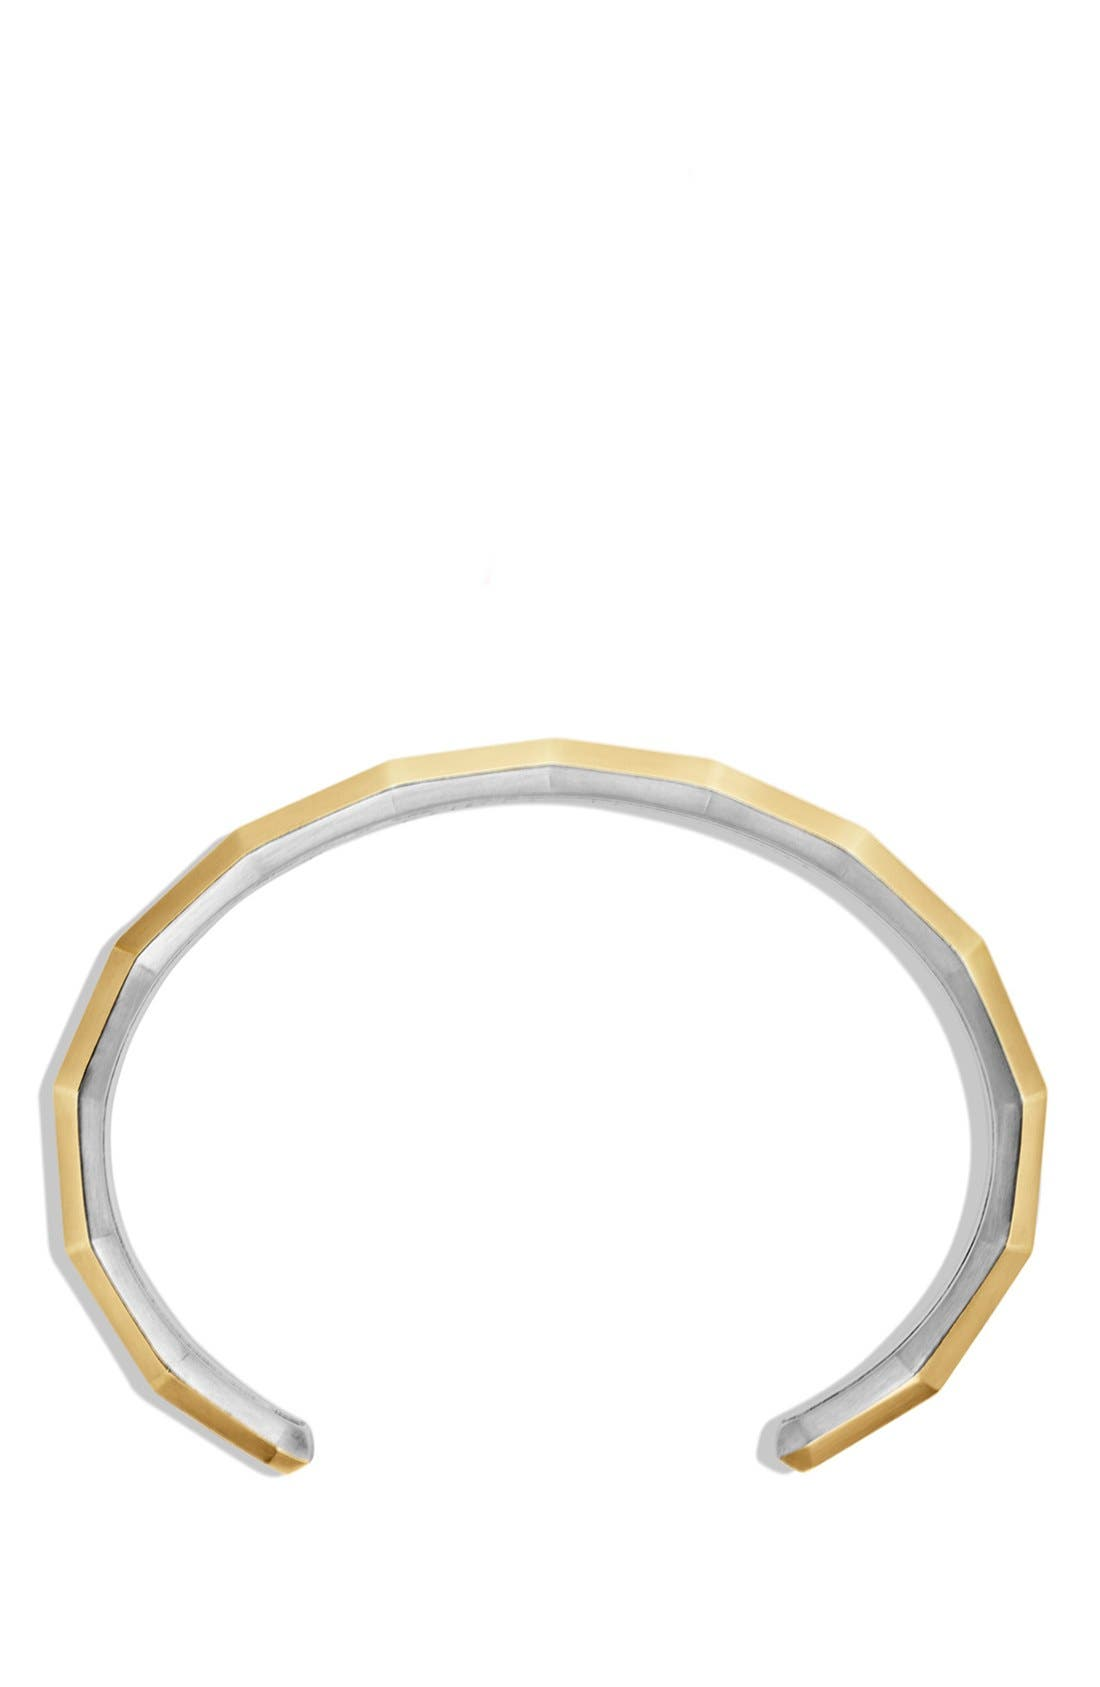 Alternate Image 2  - David Yurman 'Faceted Metal' Cuff Bracelet with 18k Gold